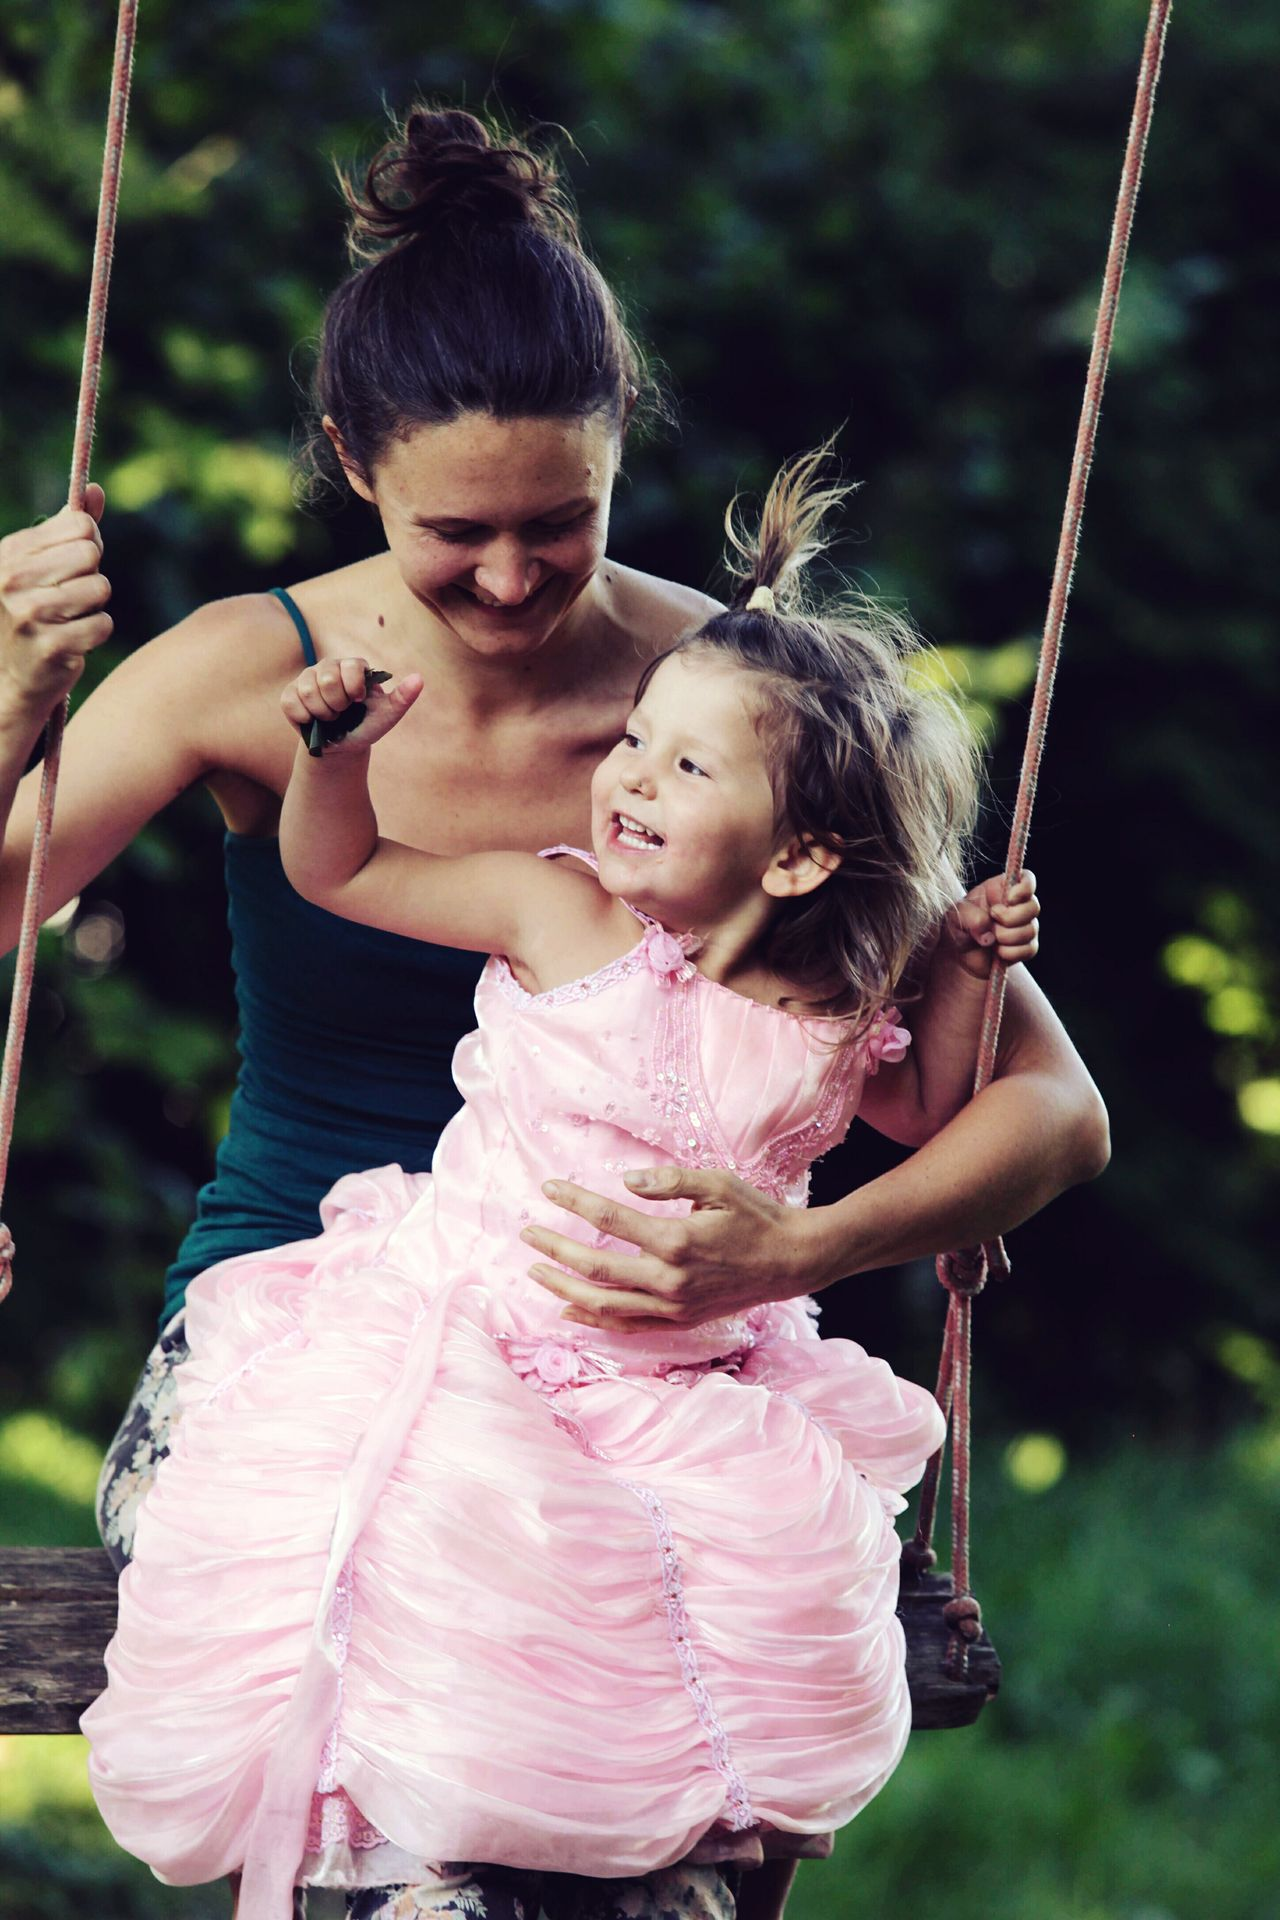 Mother Mother & Daughter Mother And Child Motherhood Child Childhood Two People Smiling Fun Happiness Cheerful Togetherness Leisure Activity Enjoyment Outdoors Swing People Playing Enjoying Life Bonding Happiness Fun Family EyeEmNewHere